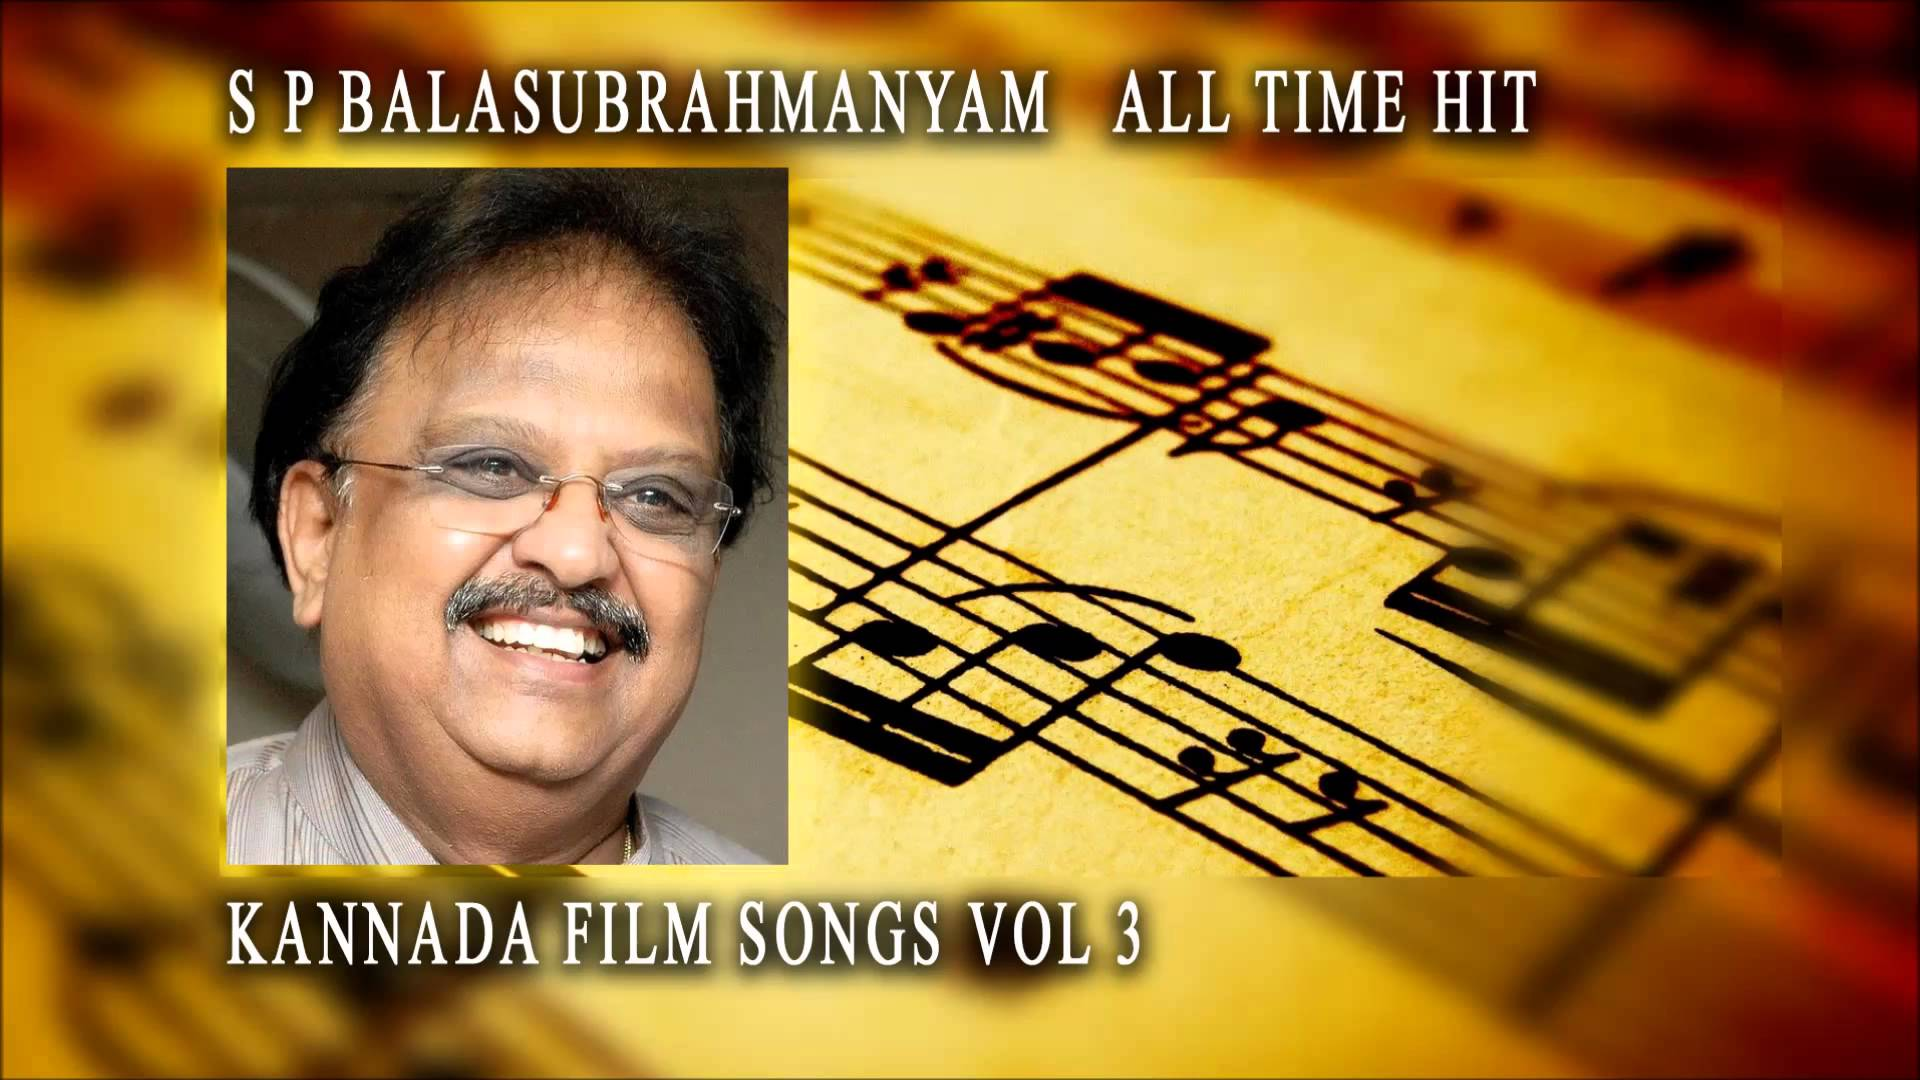 The Golden Collection: All Time Hits - S.P. Balasubramaniam Image